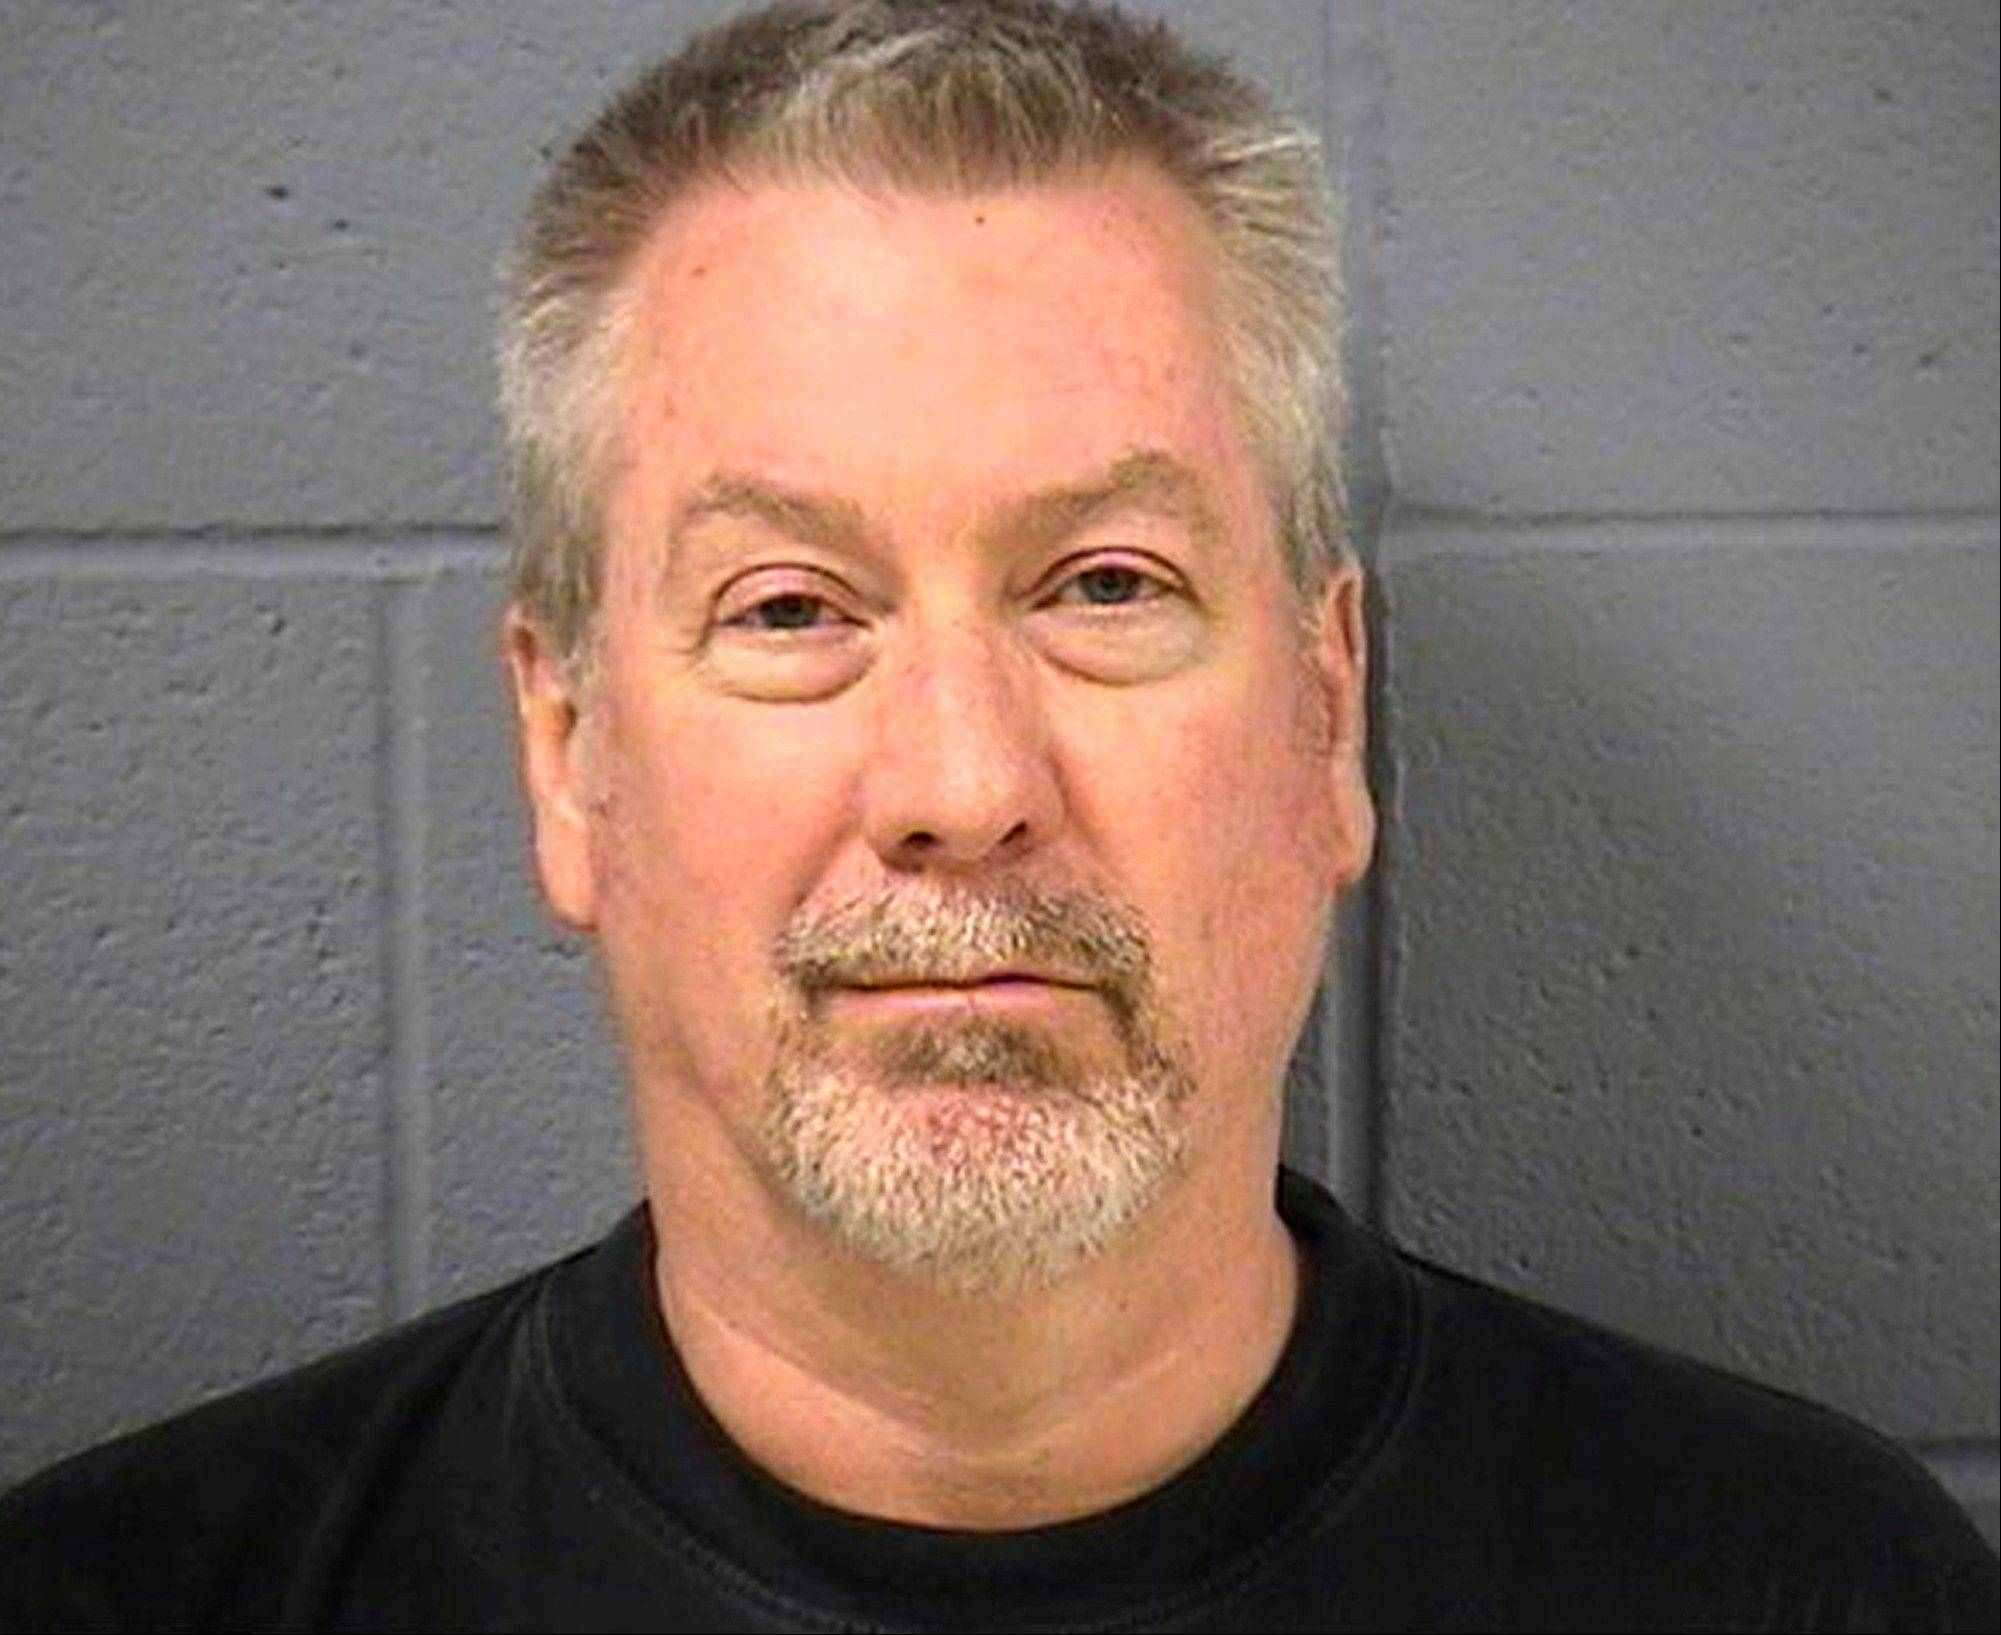 Drew Peterson is charged with two counts of first-degree murder in the drowning death of his former wife Kathleen Savio who was found dead in an empty bathtub in 2004. Jury selection is scheduled to begin in his trial Monday.